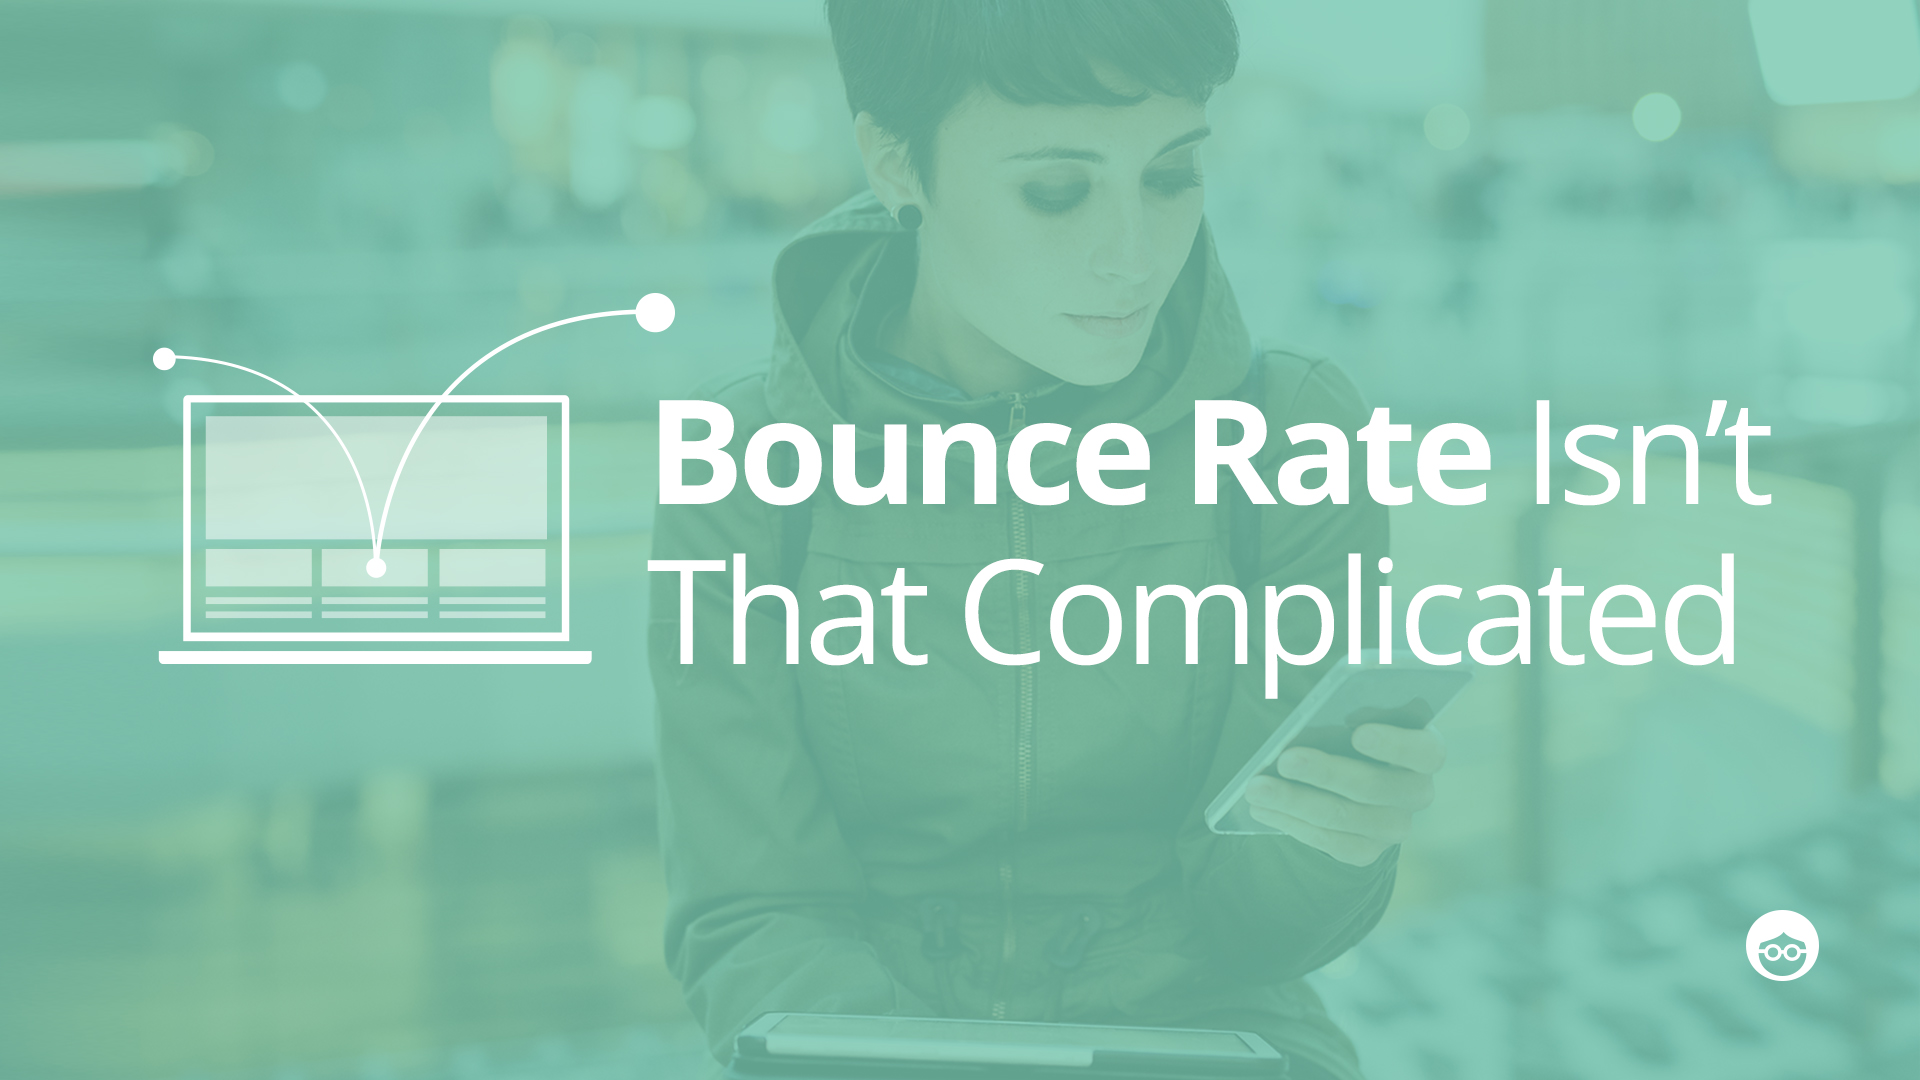 Struggling with Bounce Rate